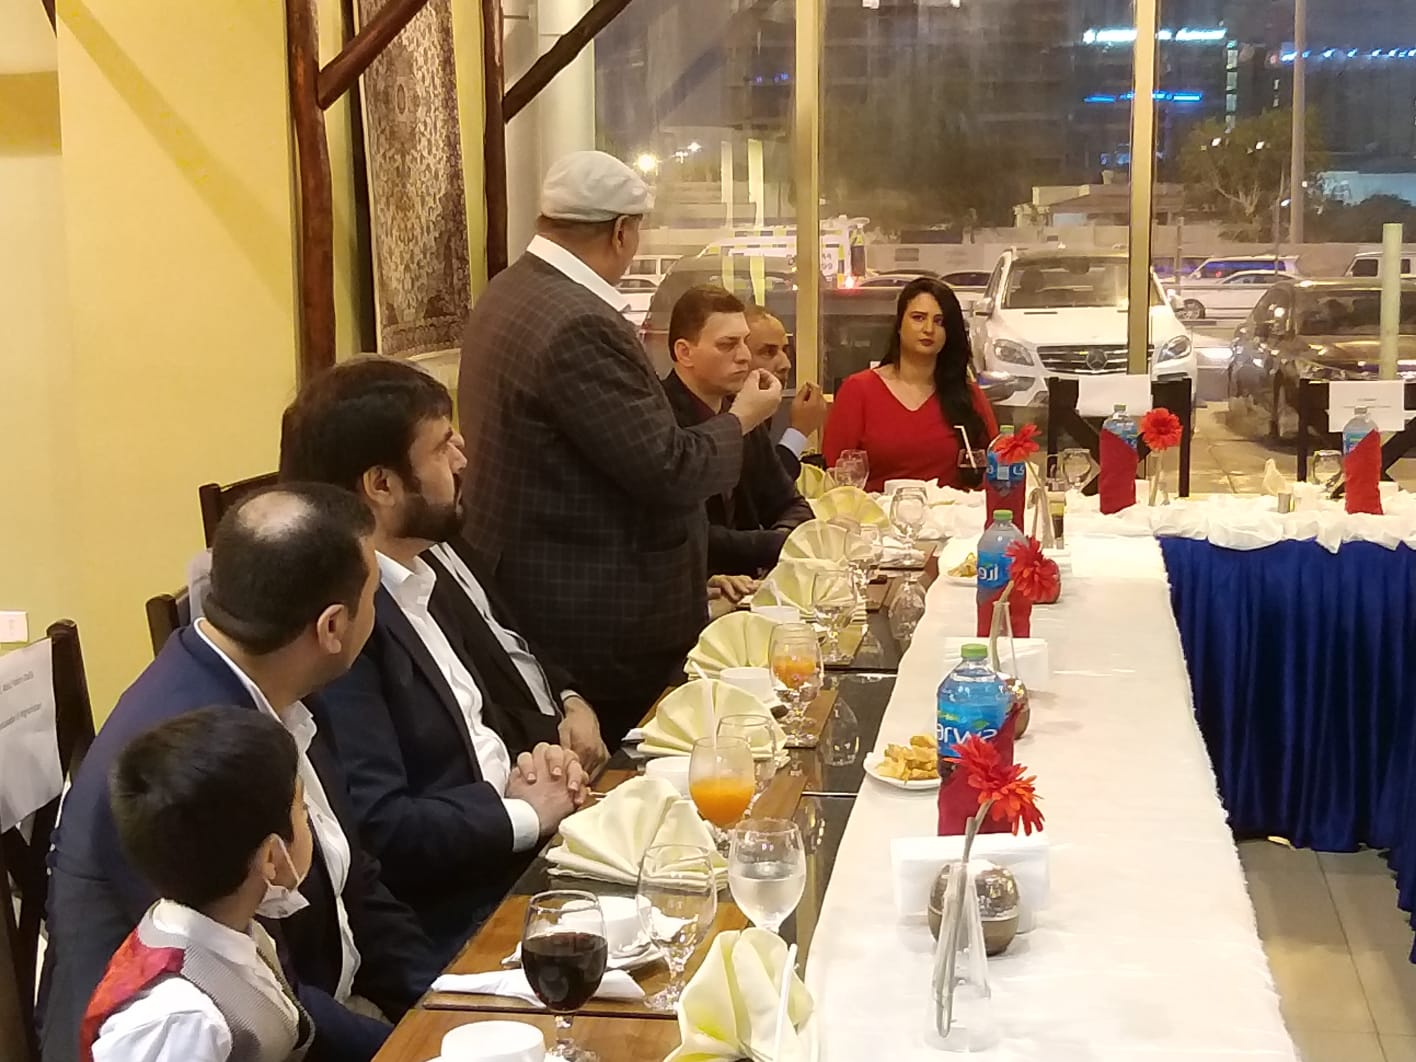 Pakistani Community in Qatar Hosts Farewell Dinner for Outgoing Envoys of Iran and Dominican Republic